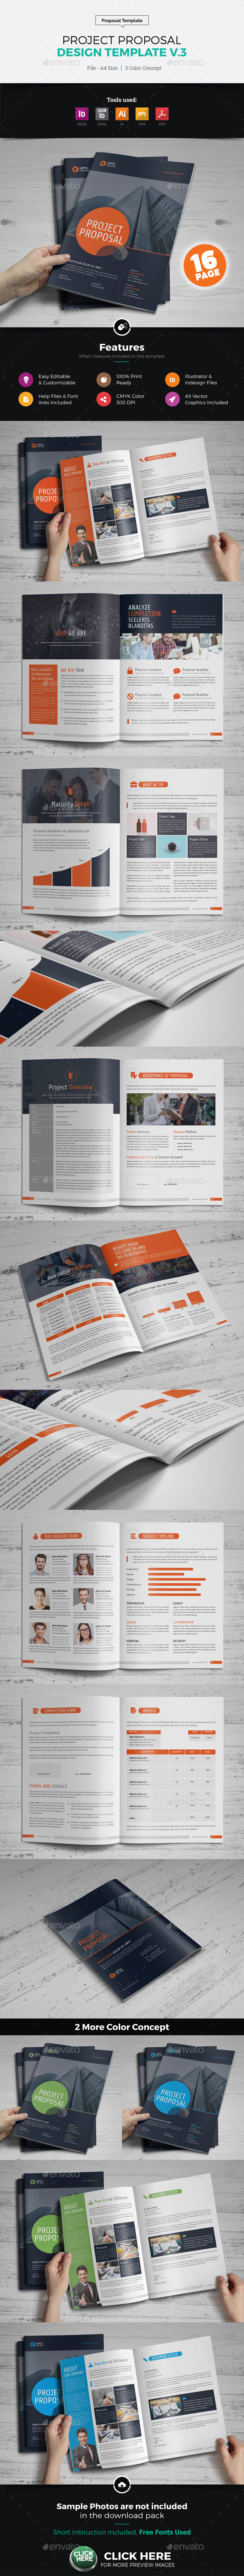 Project Business Proposal Design v3 - Proposals & Invoices Stationery